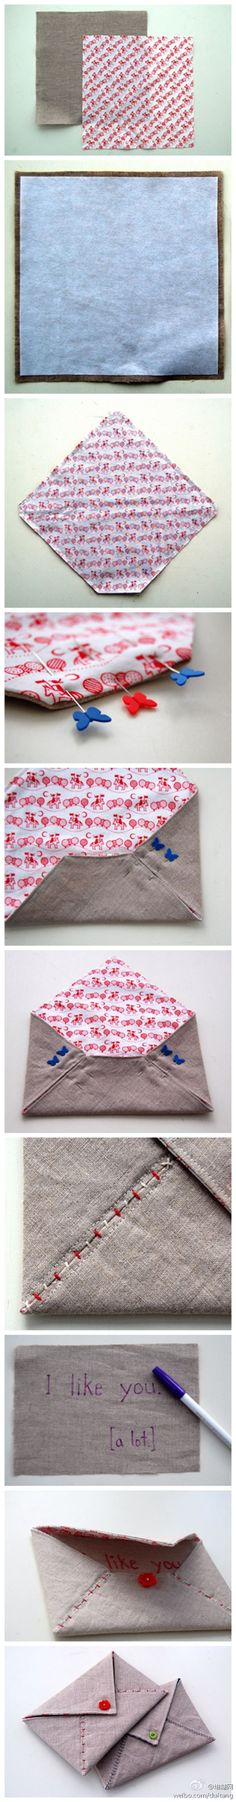 fabric envelope. I love this idea for the tooth fairy!